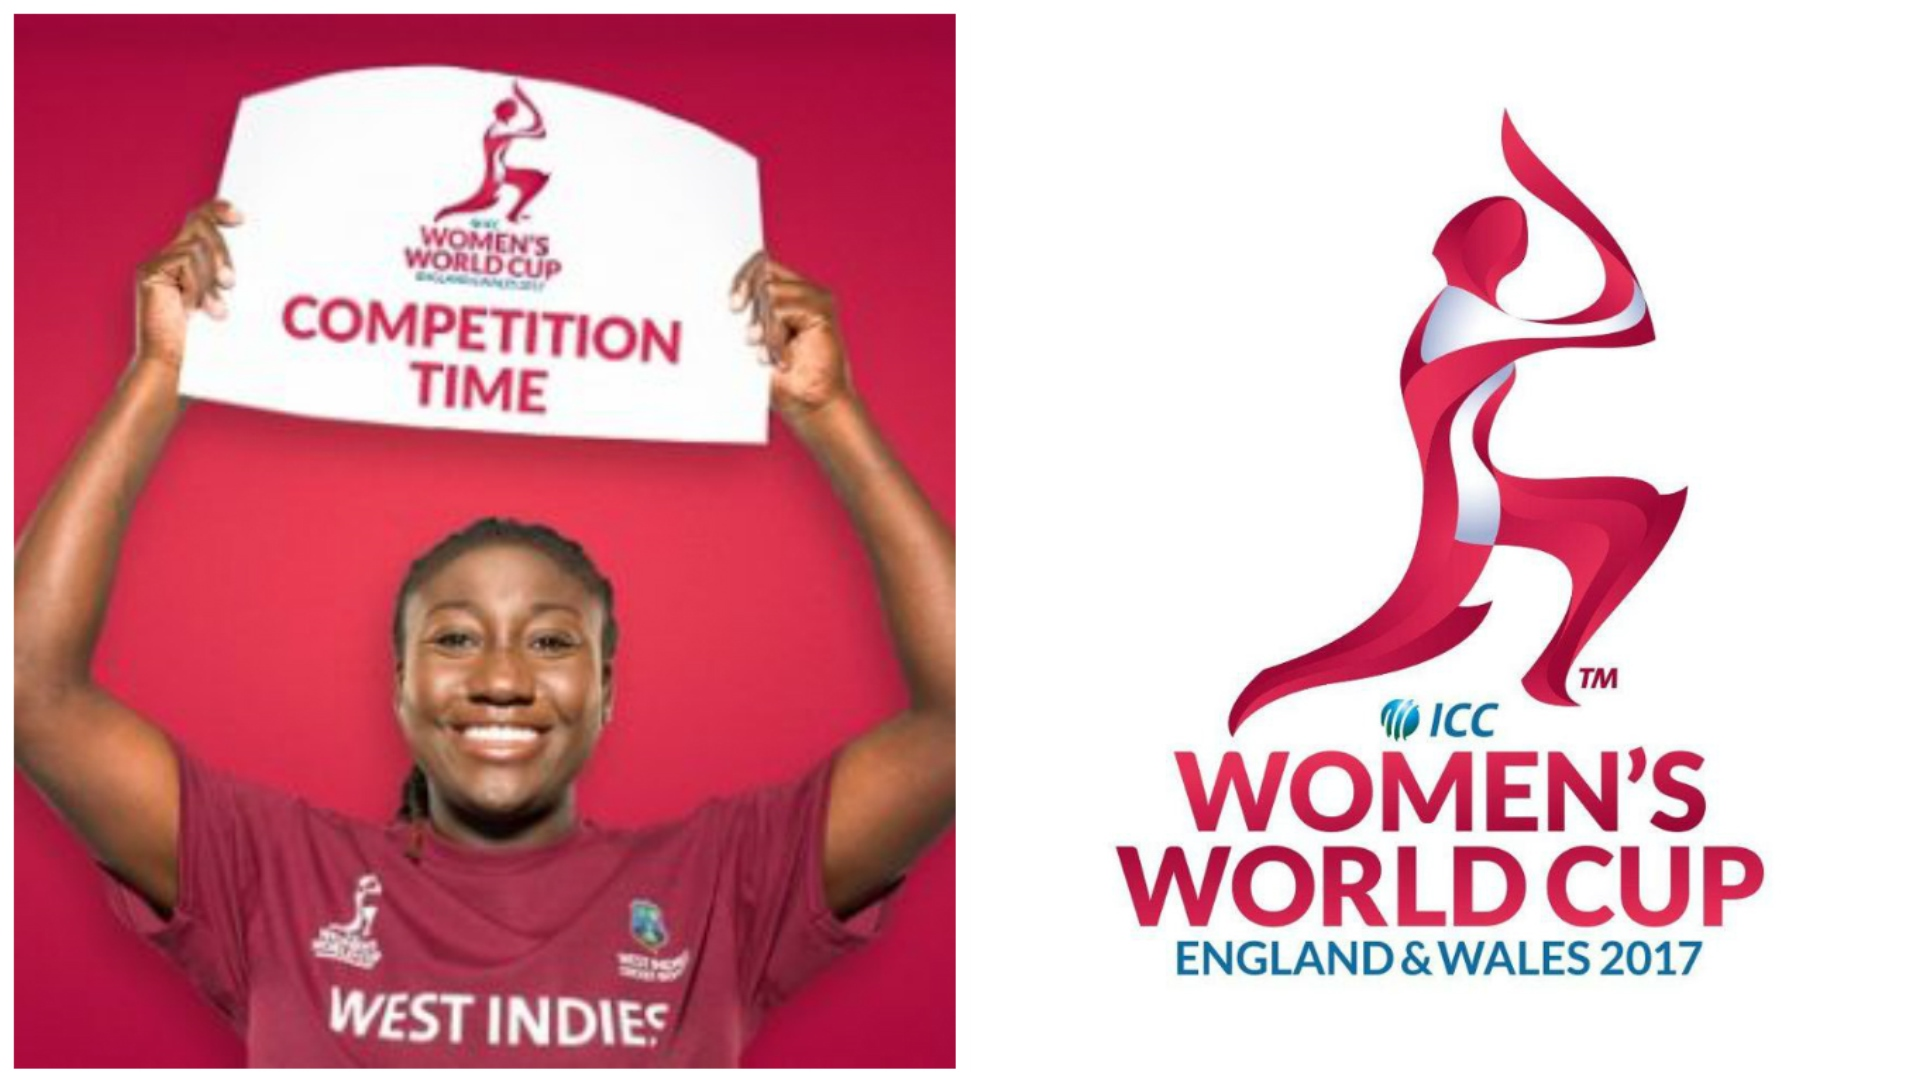 Nominate unsung hero to be a guest at ICC Women's World Cup launch